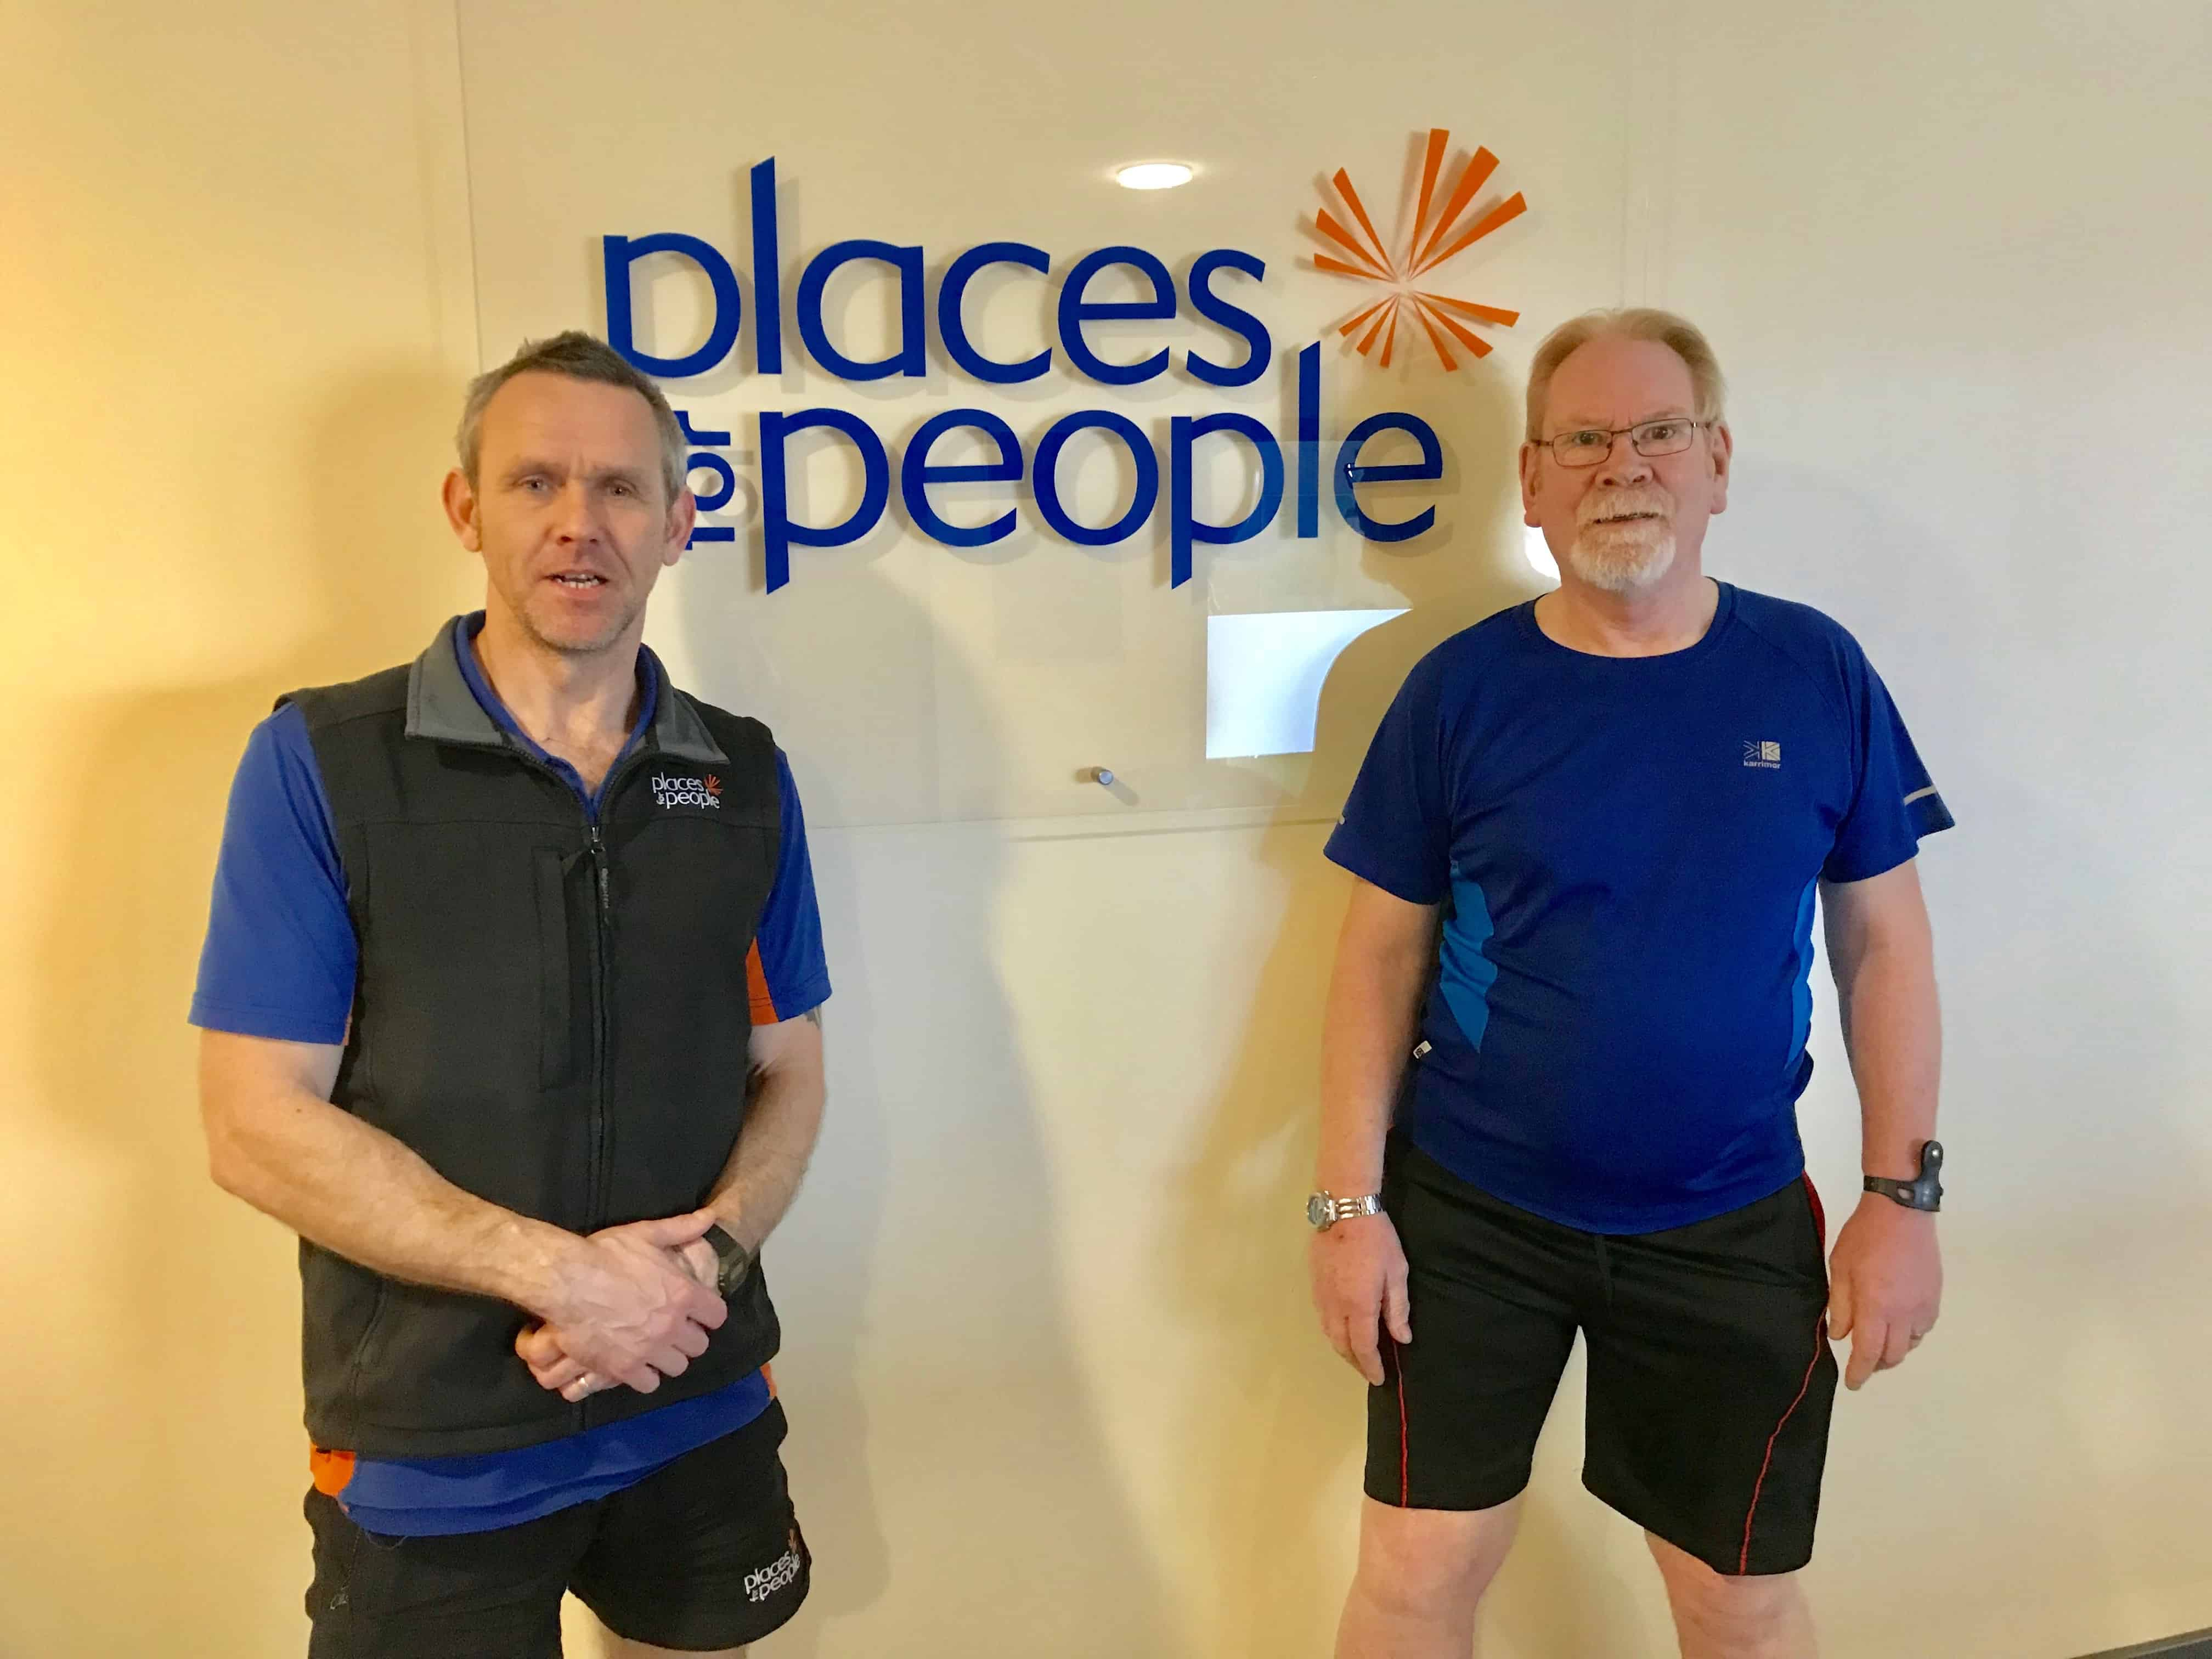 steve and paul standing next to places for people logo